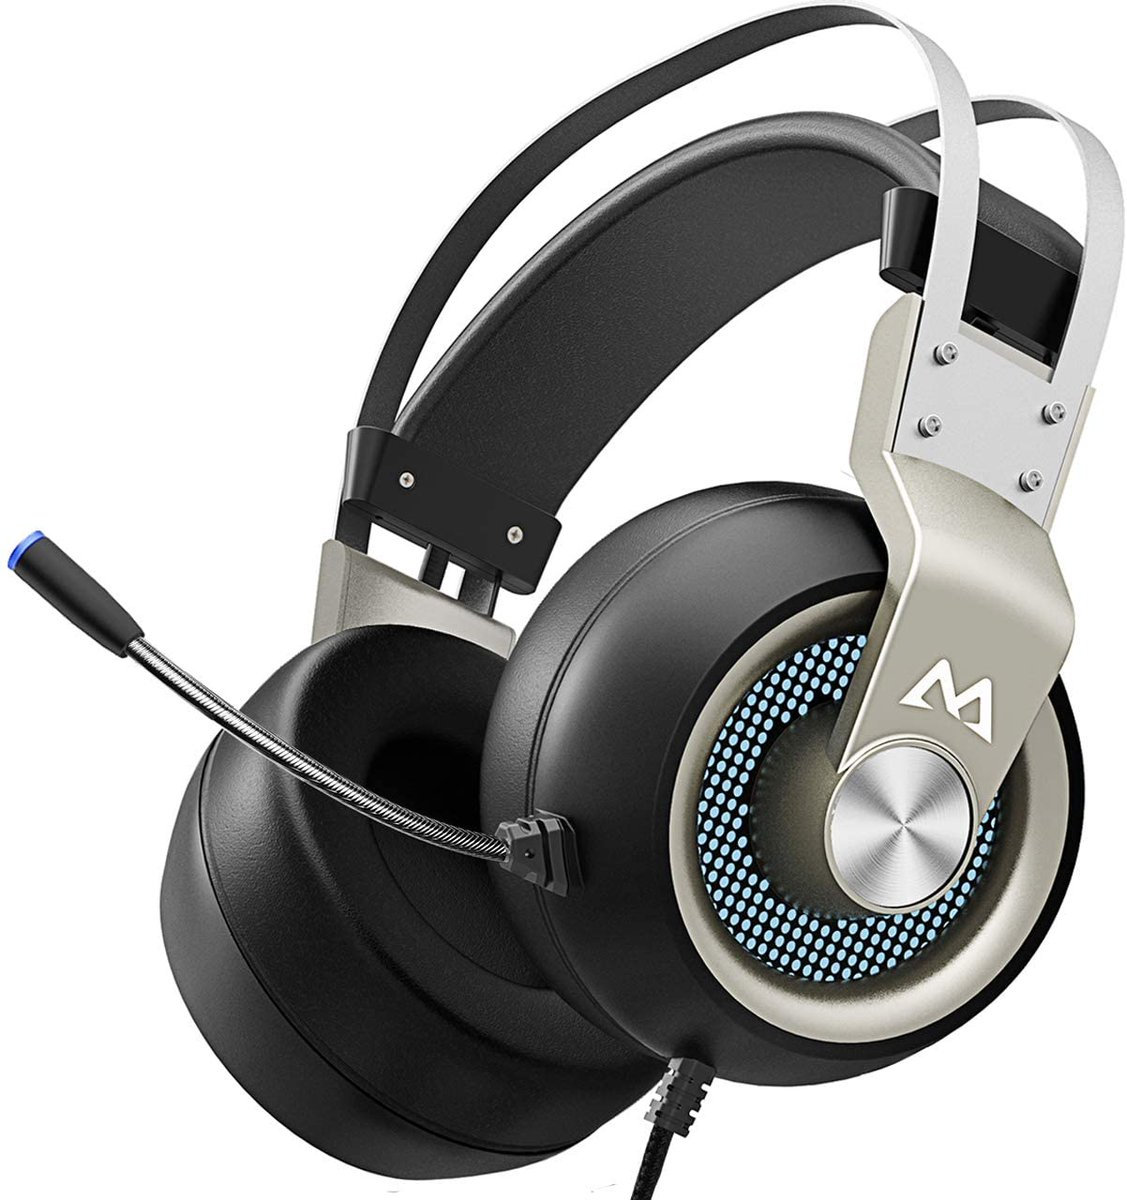 Mpow EG3 Pro - Over-Ear Gaming Headset  Only $20.49!